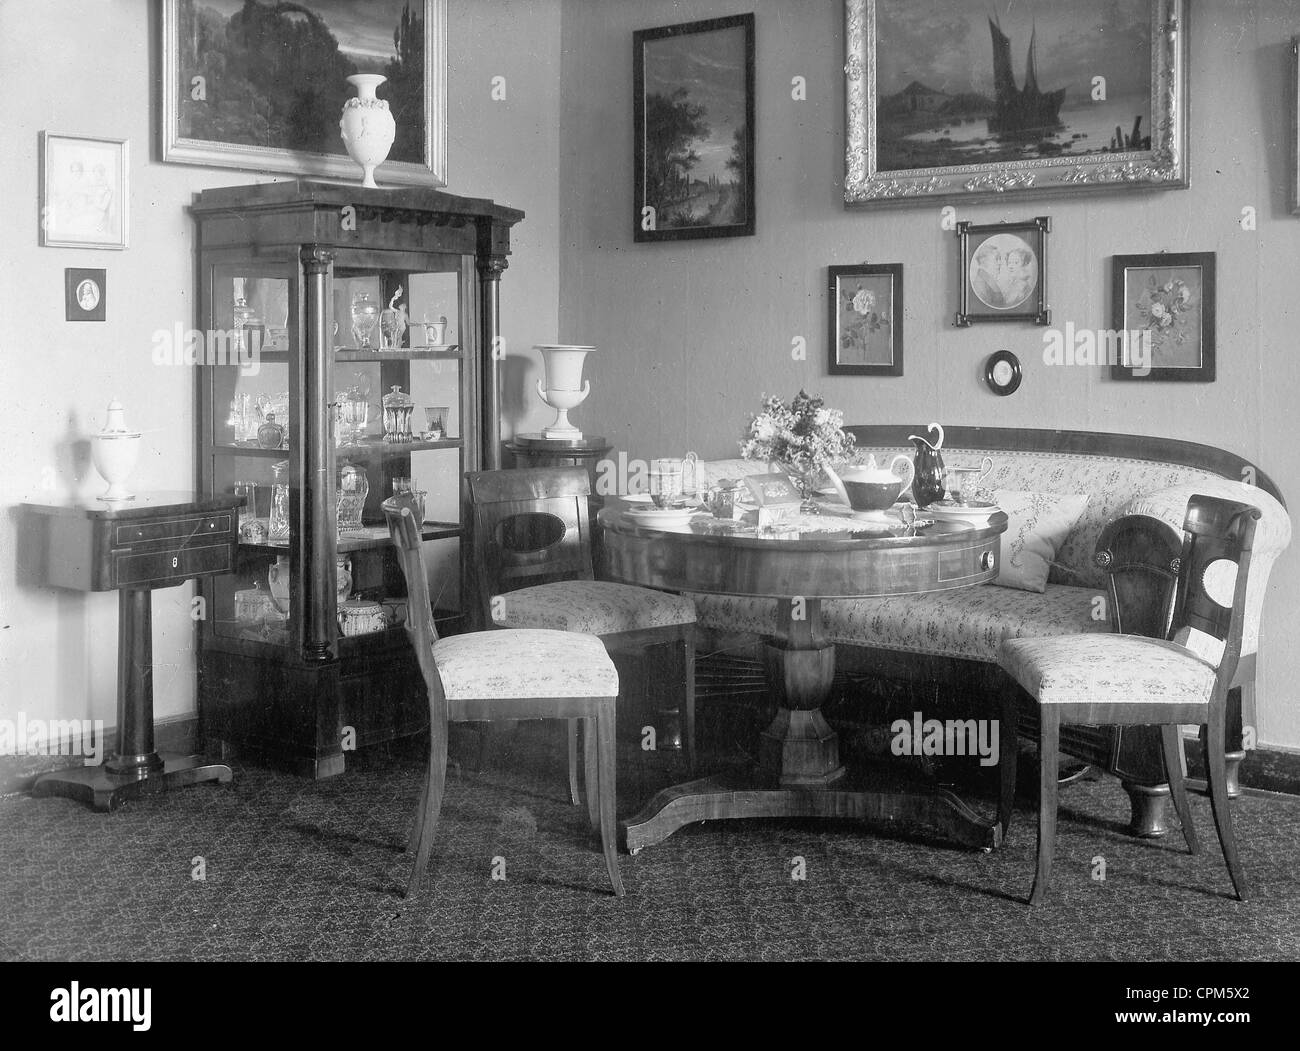 Upper middle class living room - Stock Photo Upper Middle Class Living Room Around 1900